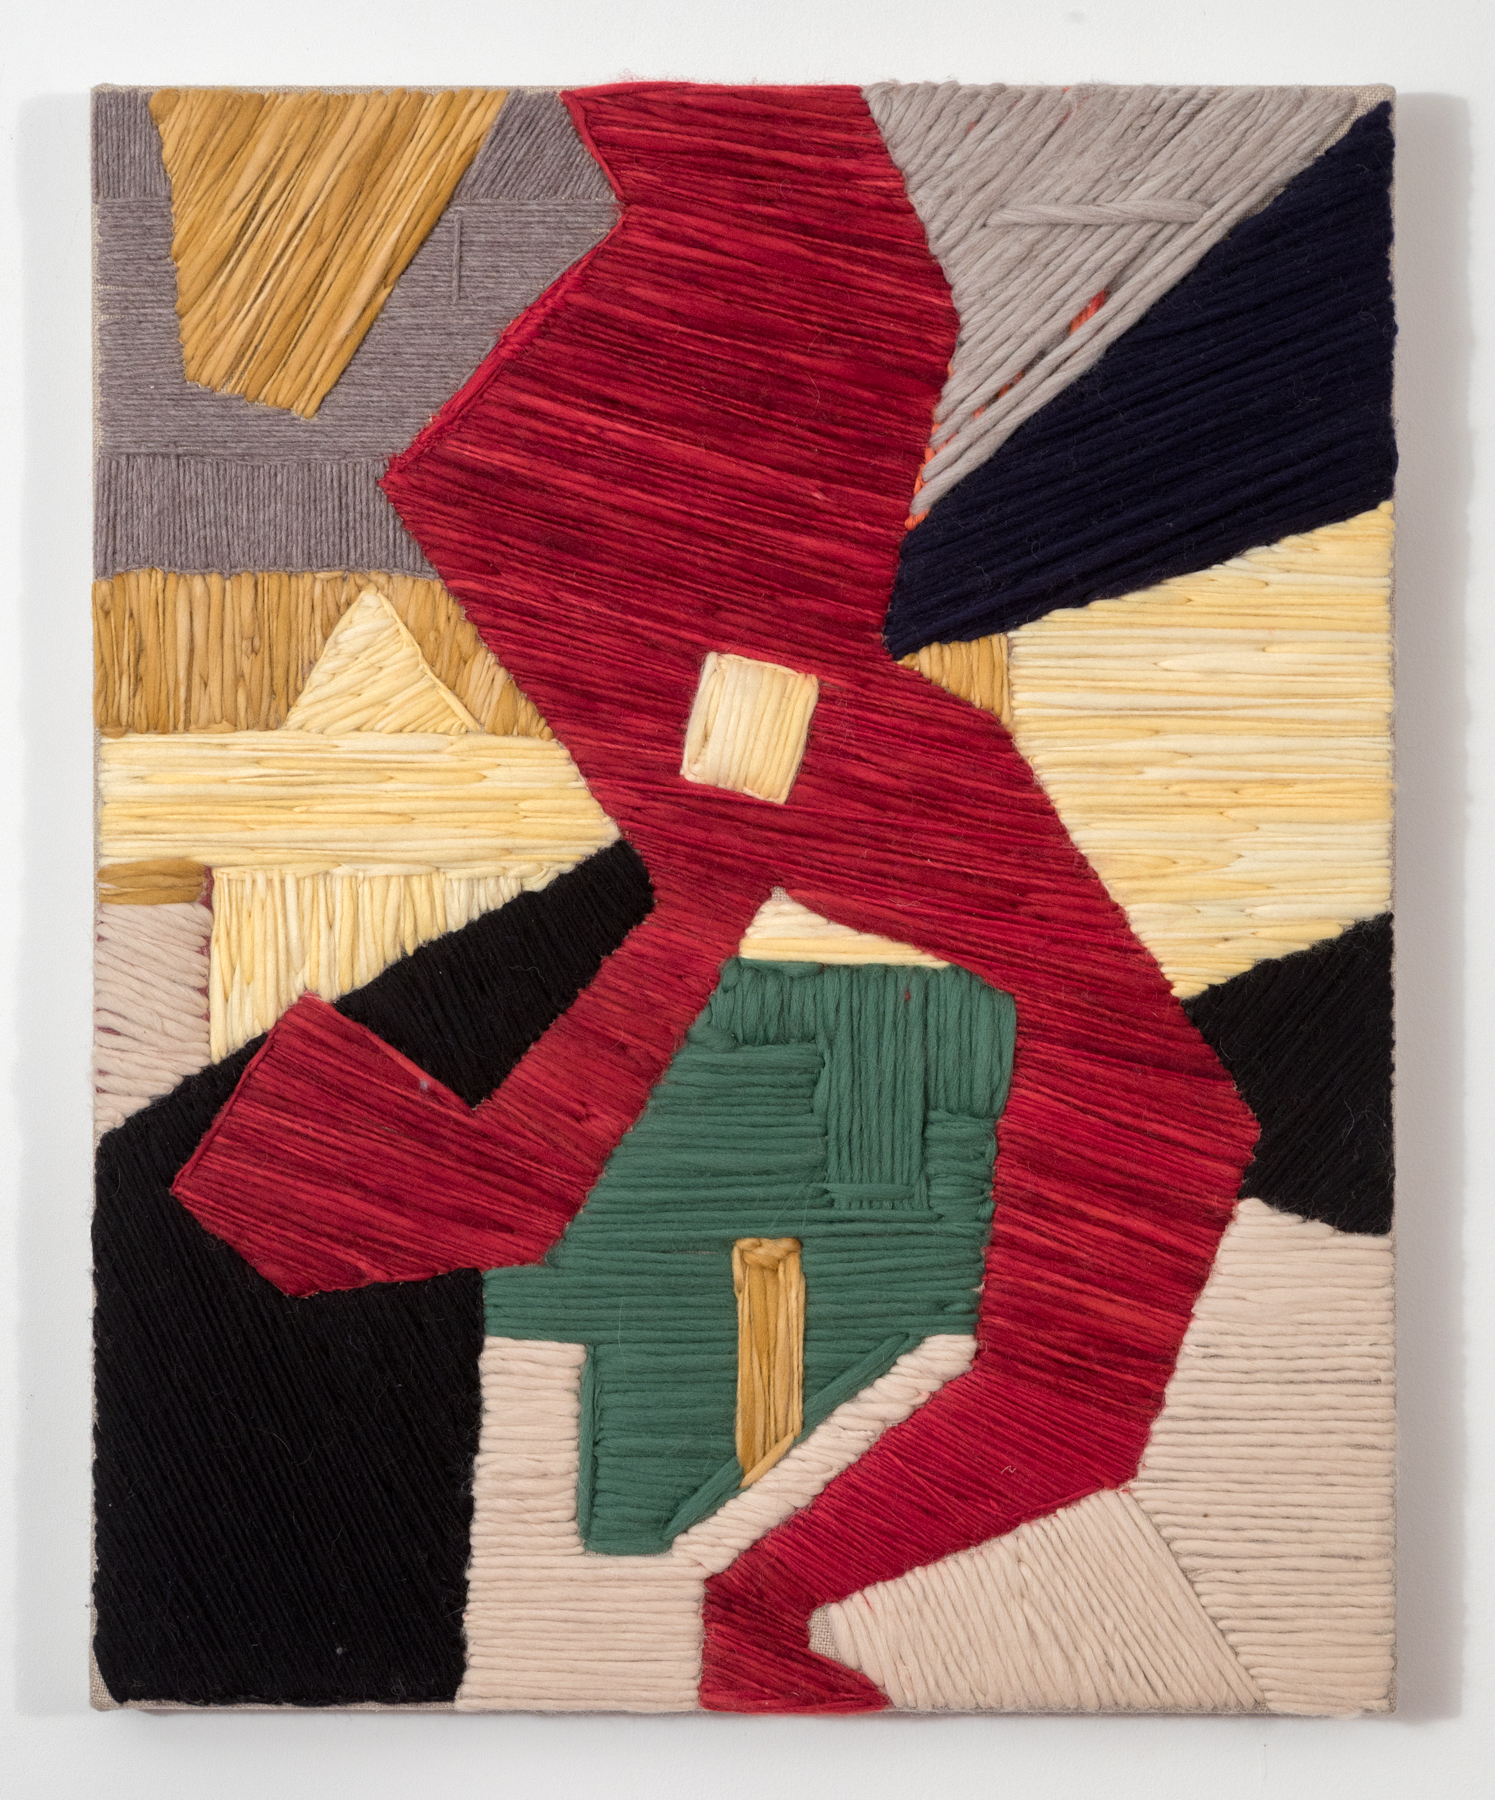 System 14 2017 Wool and Linen on Wood Stretcher 30 x 24 inches